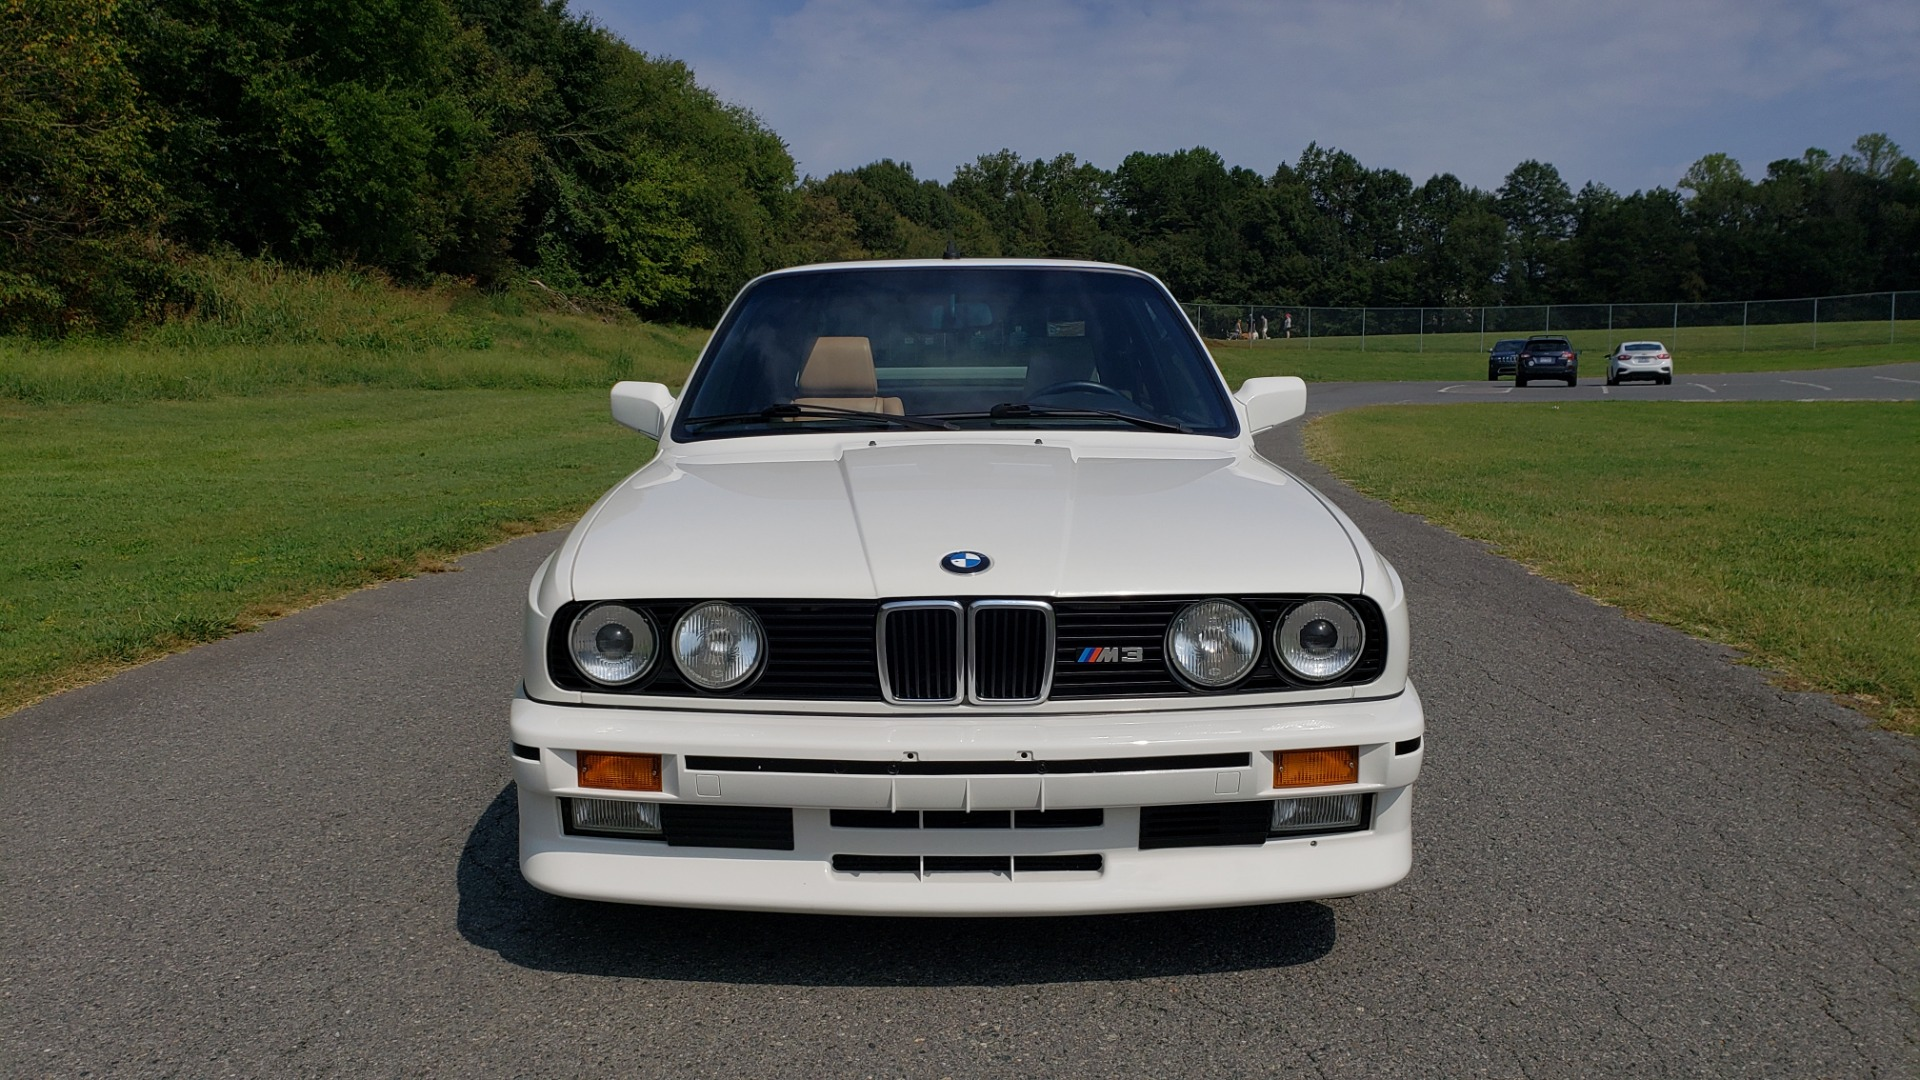 Used 1989 BMW M3 COUPE 2DR / 5-SPEED MAN / LOW MILES / SUPER CLEAN for sale Sold at Formula Imports in Charlotte NC 28227 33